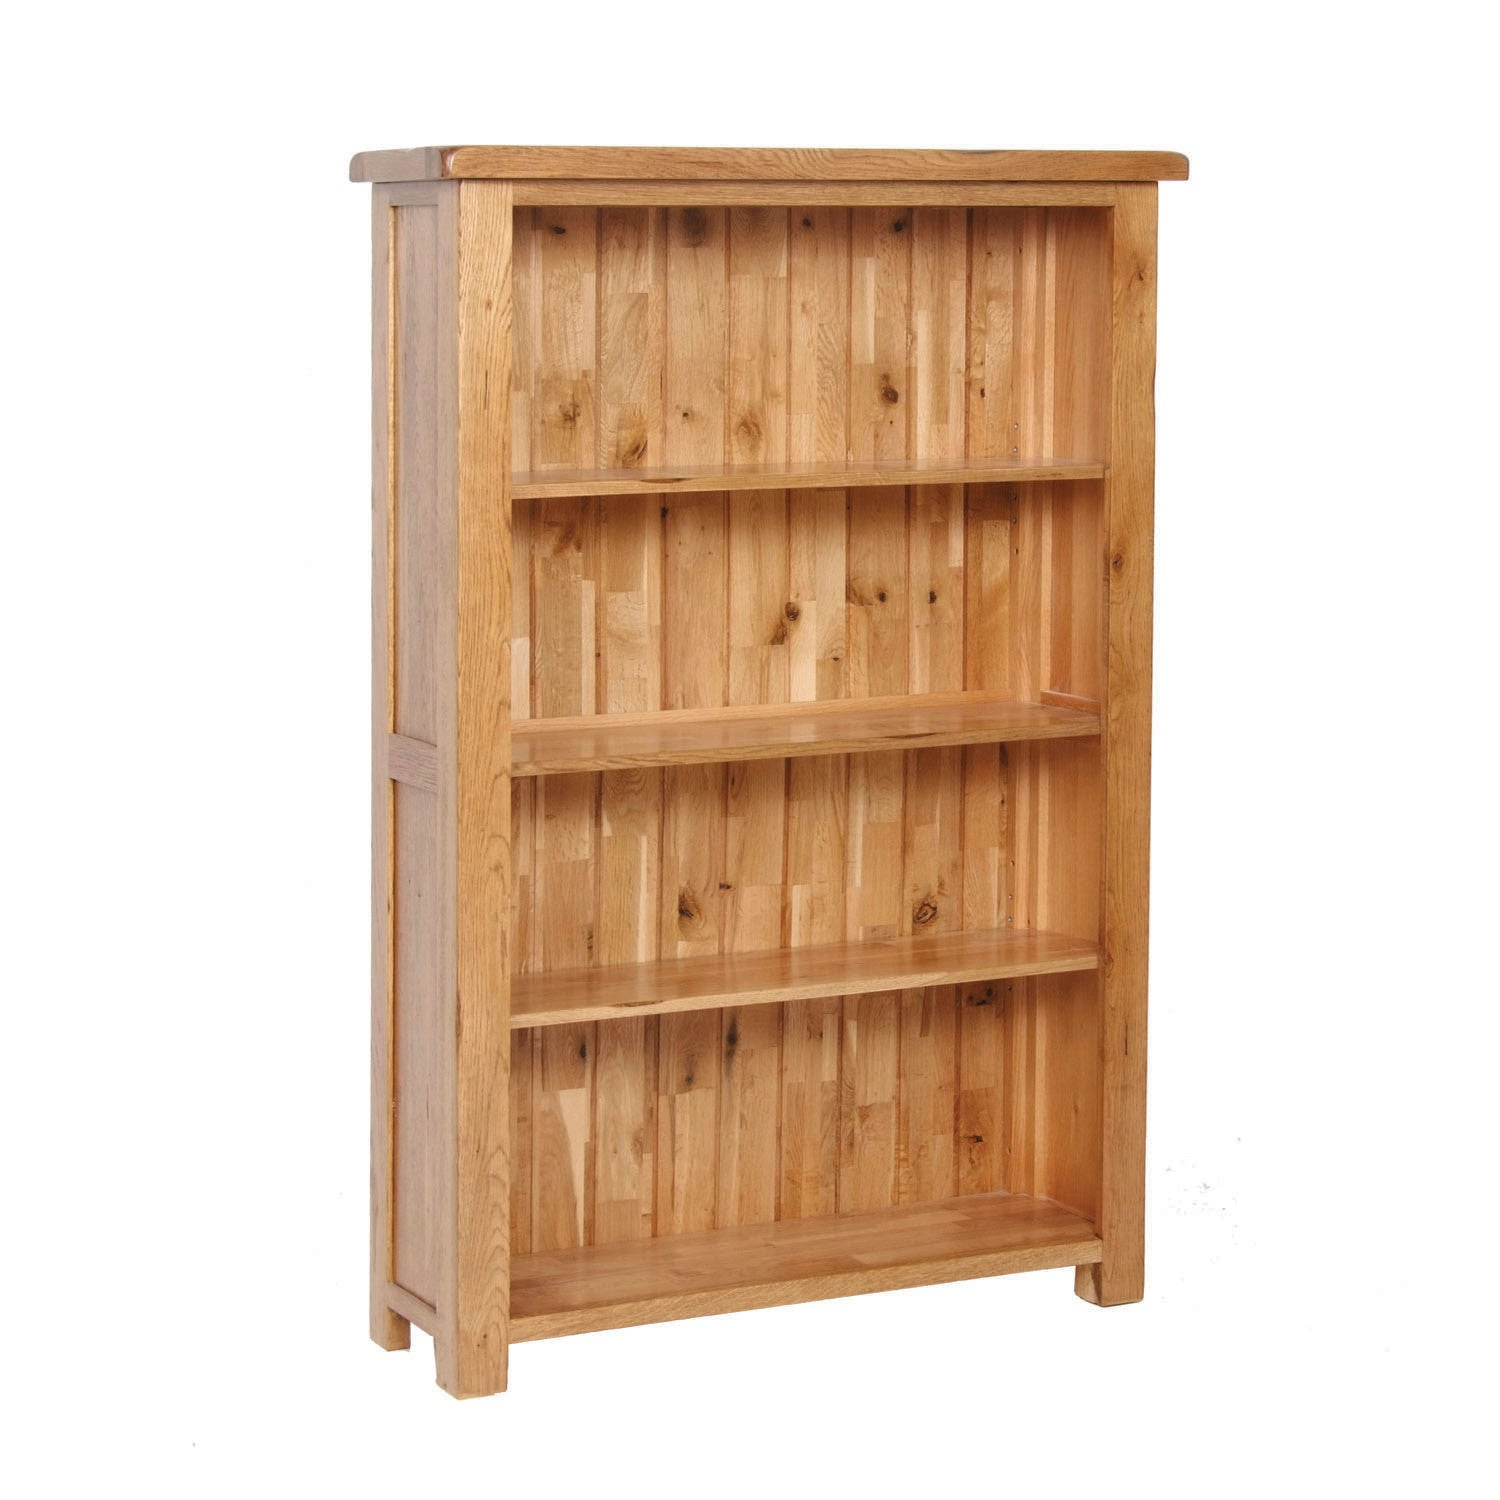 Auvergne Solid Oak Bookcase - Wide (Medium) - Better Furniture Norwich & Great Yarmouth